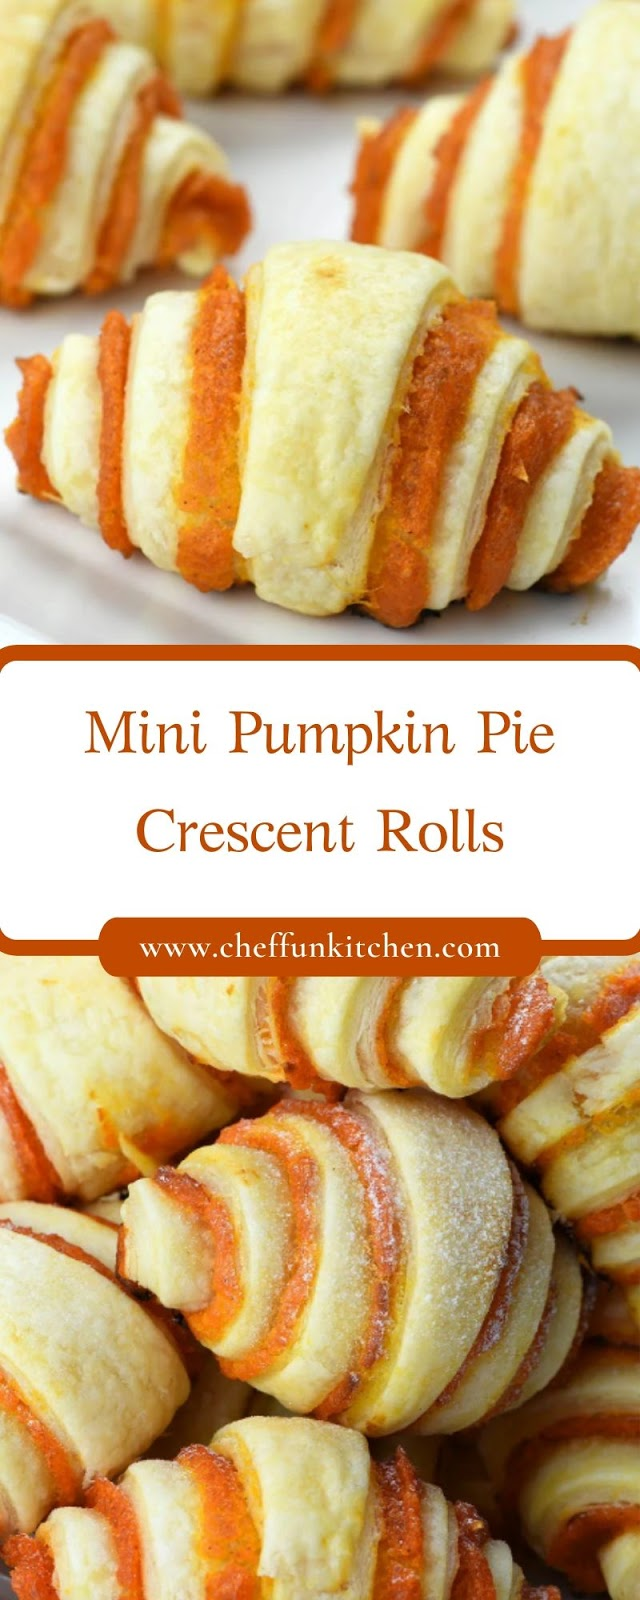 Mini Pumpkin Pie Crescent Rolls